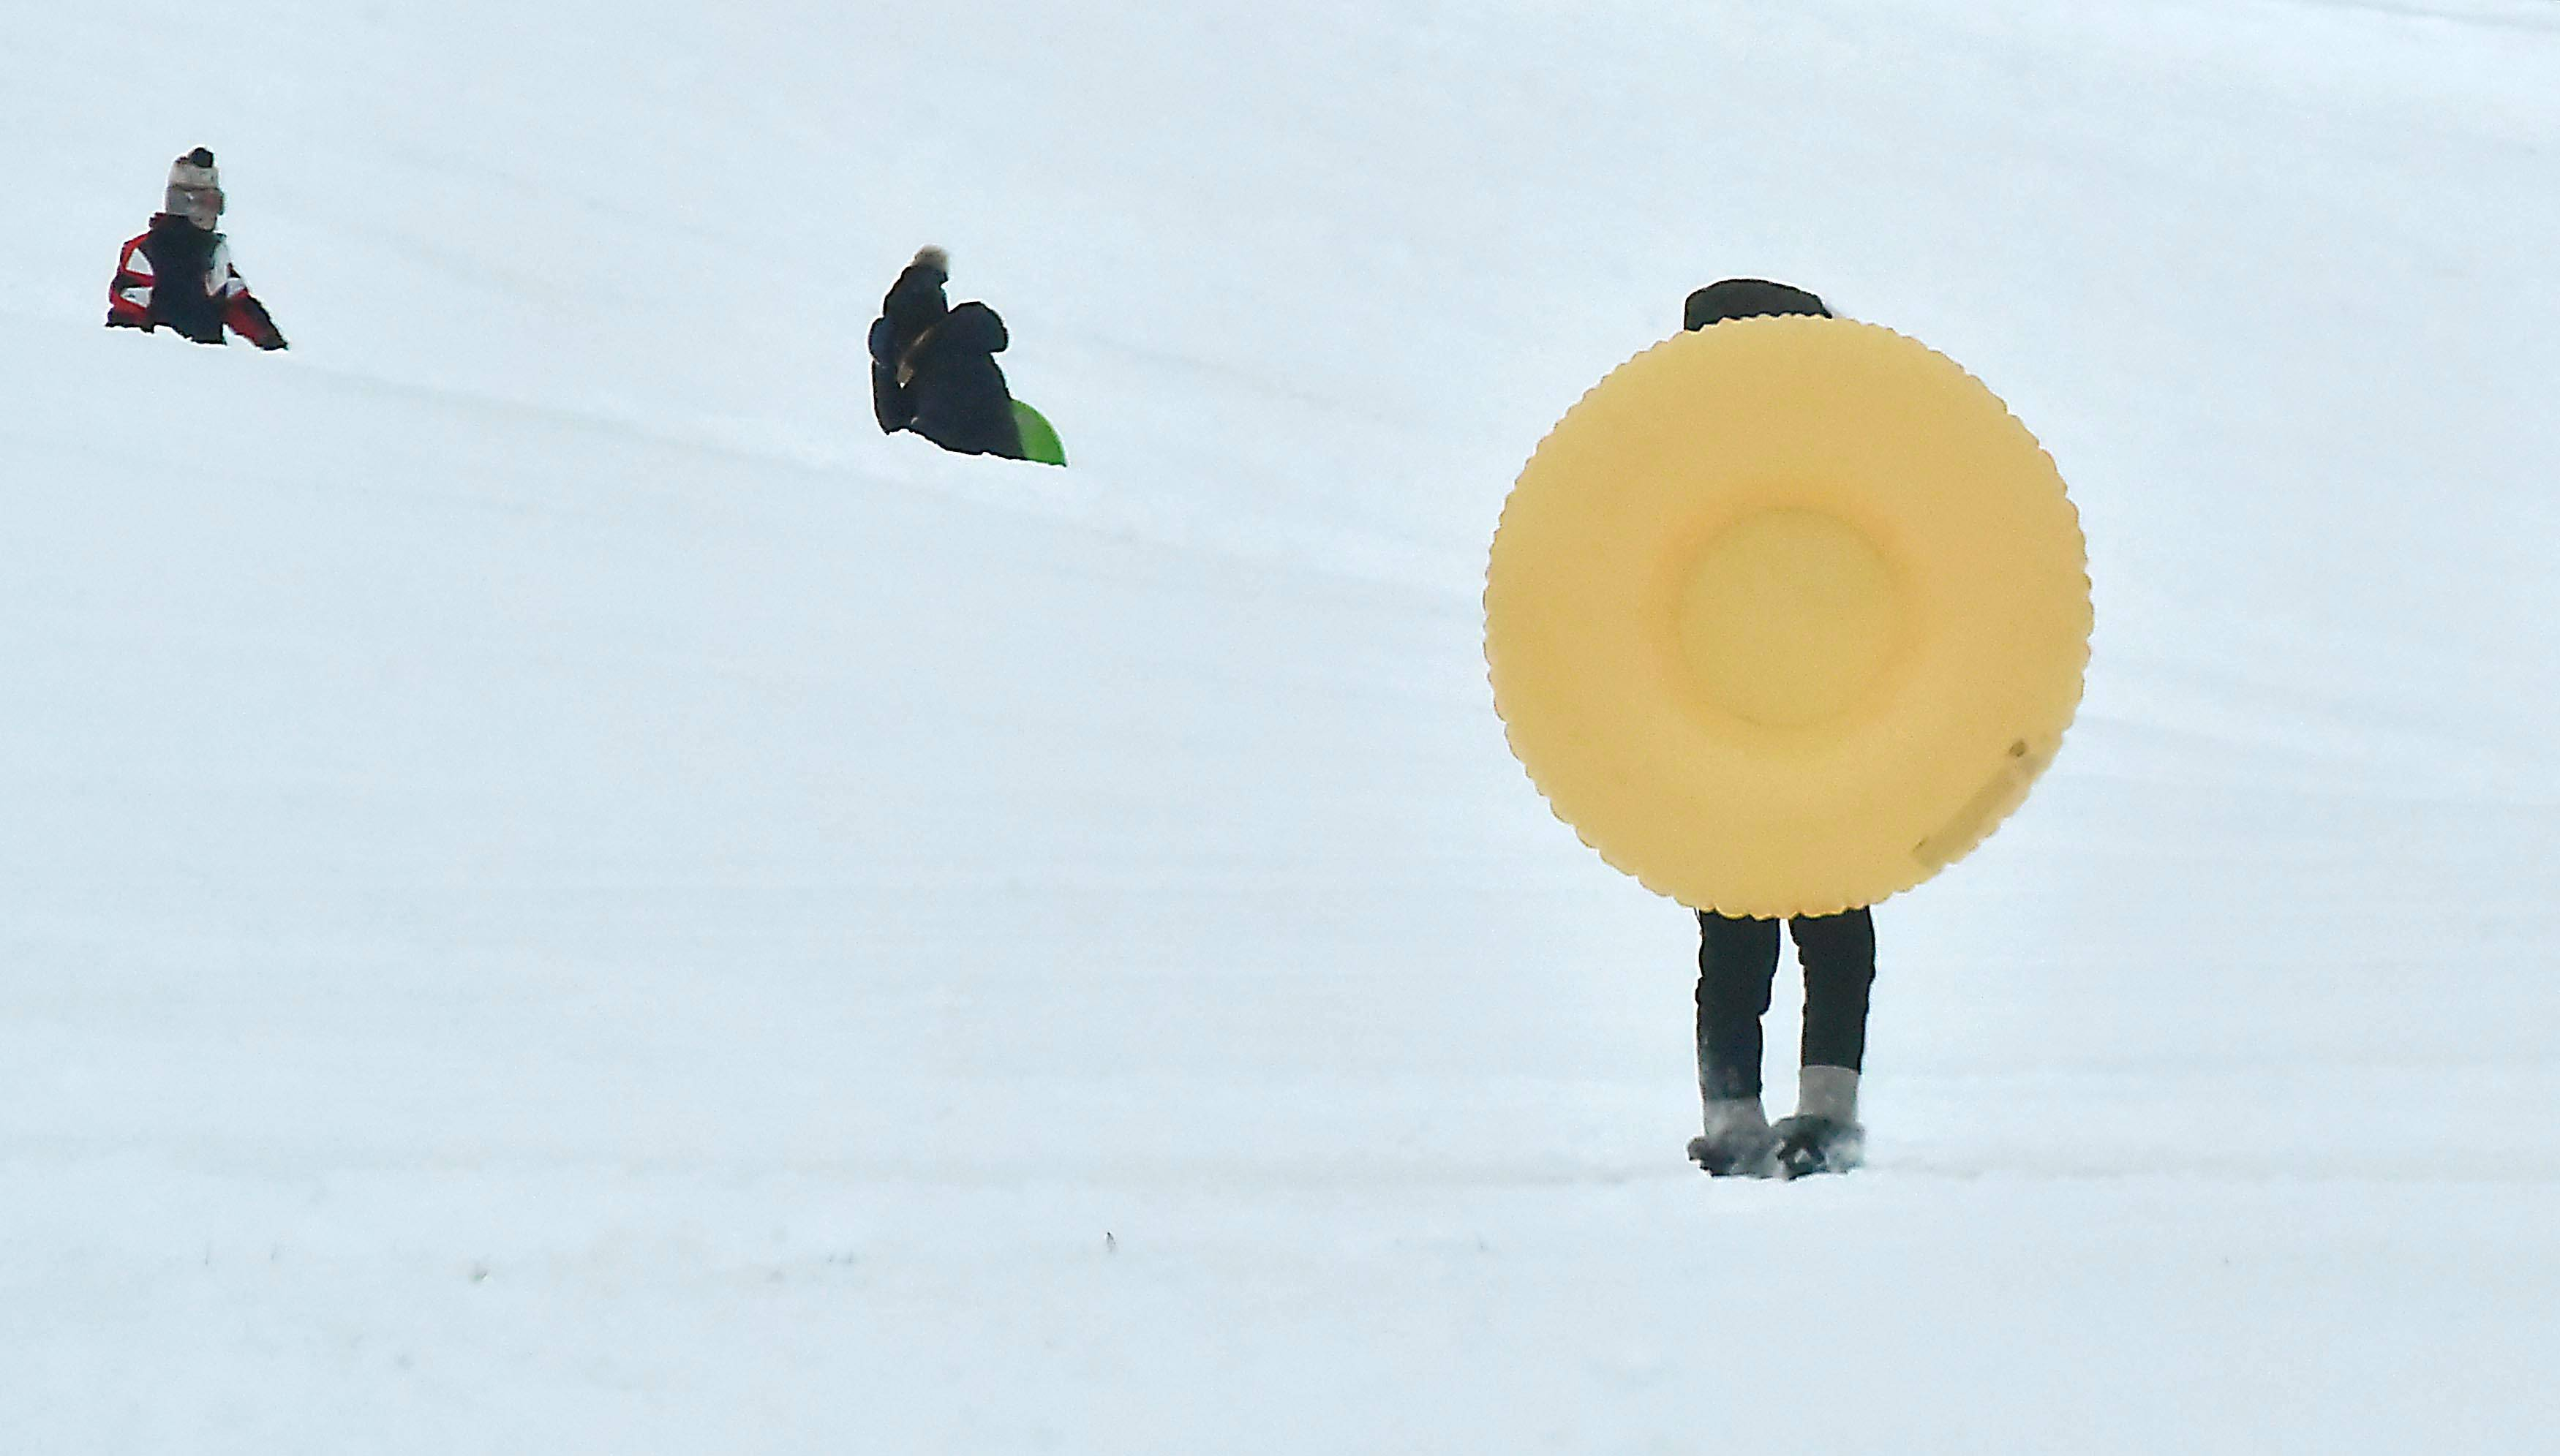 Weekend snow brings shovels, plane sliding off O'Hare runway, but fun for suburban adventurers